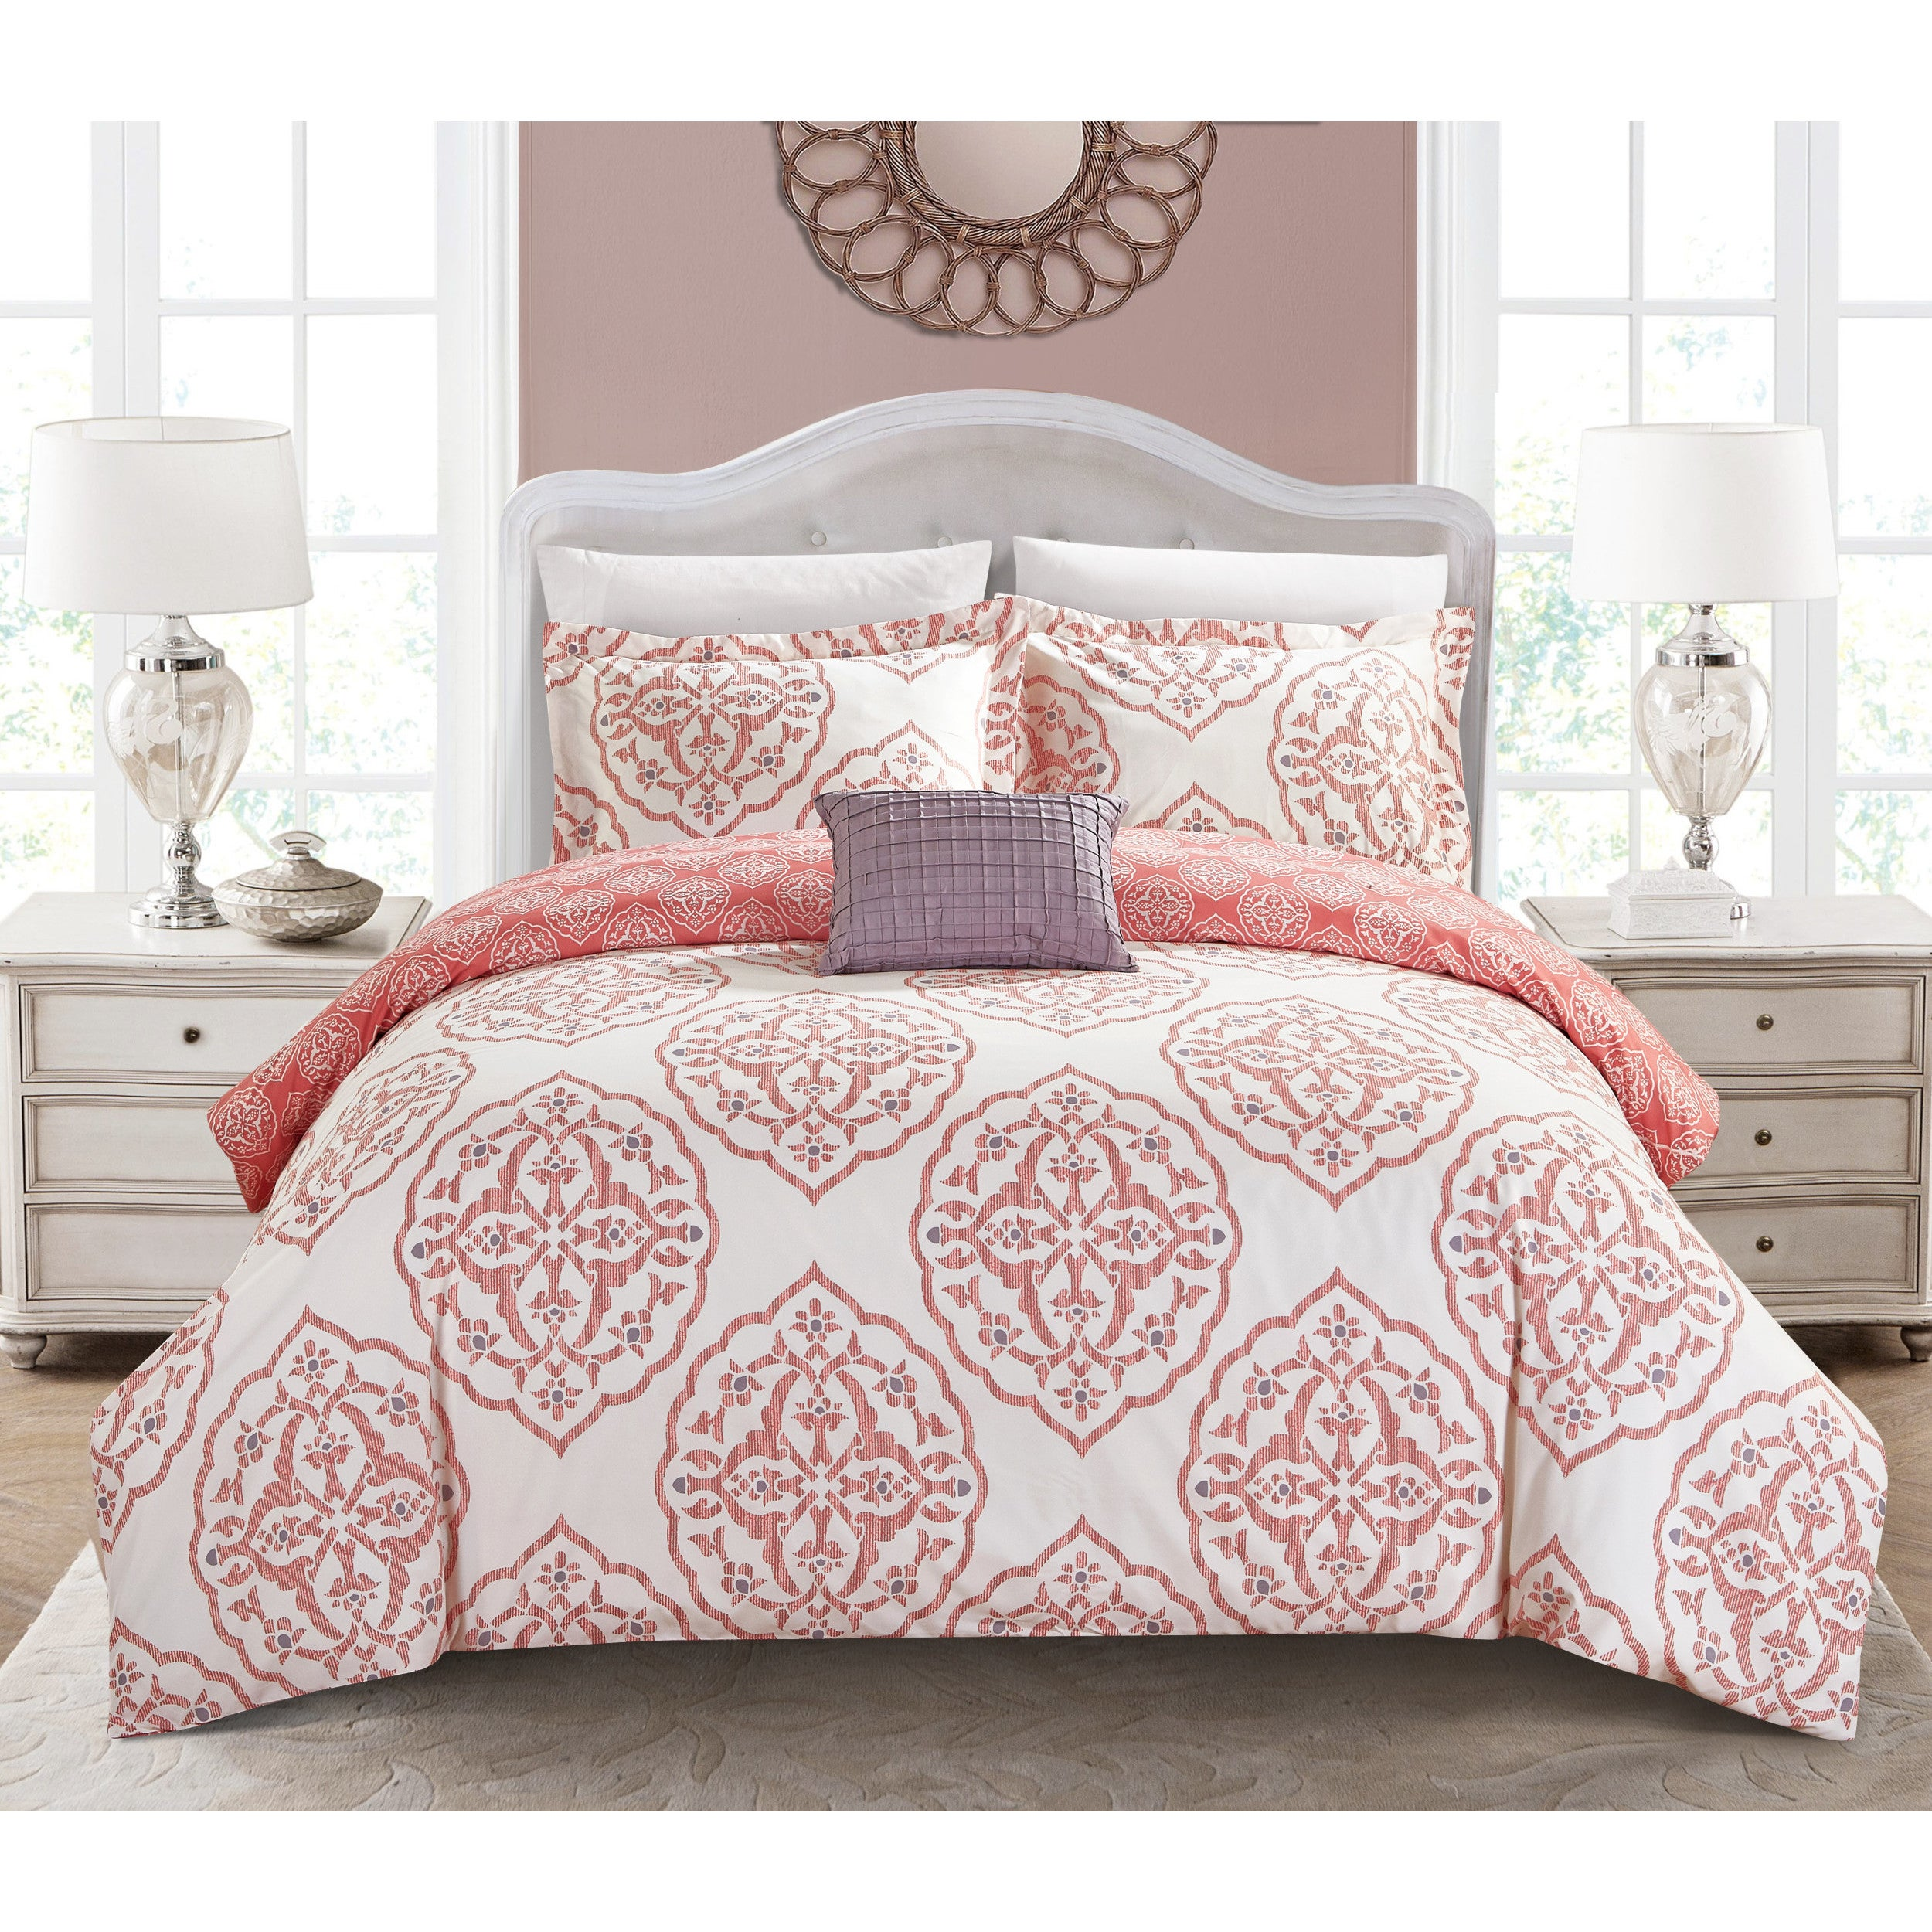 Pink, Victorian Bed-in-a-Bag | Find Great Bedding Deals Shopping at ...